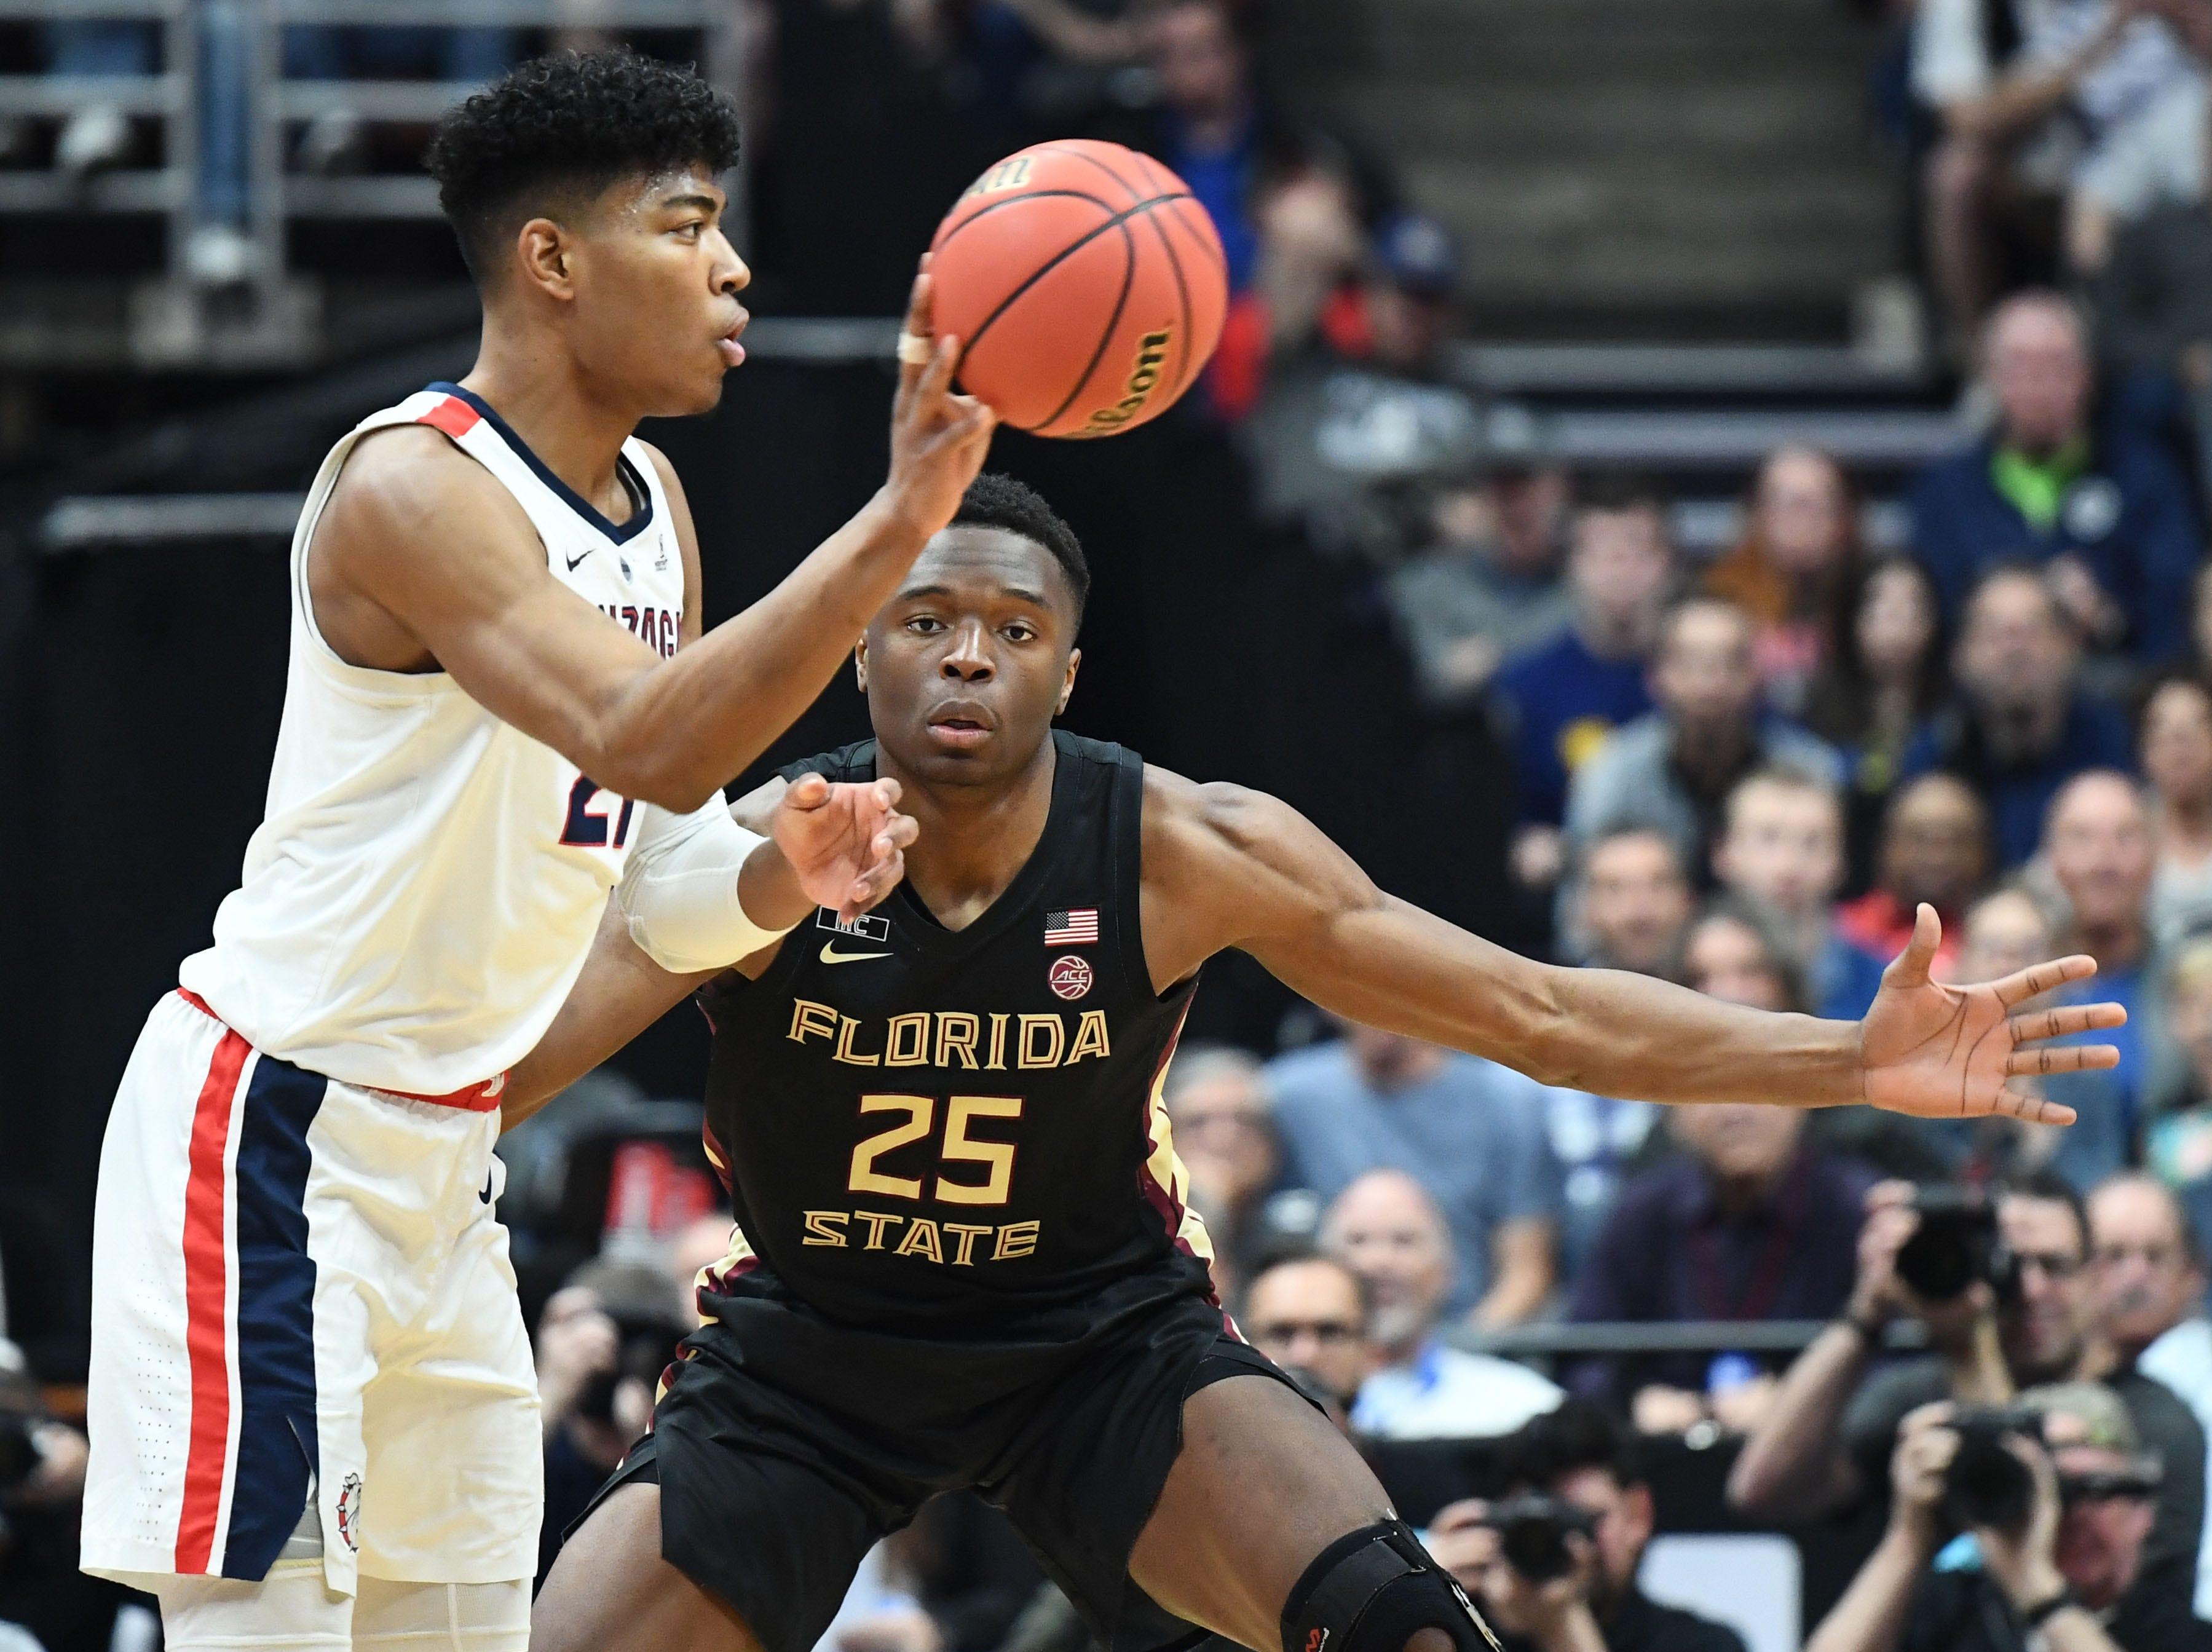 March 28, 2019; Anaheim, CA, USA; Gonzaga Bulldogs forward Rui Hachimura (21) passes against Florida State Seminoles forward Harrison Prieto (35) during the first half in the semifinals of the west regional of the 2019 NCAA Tournament at Honda Center. Mandatory Credit: Robert Hanashiro-USA TODAY Sports